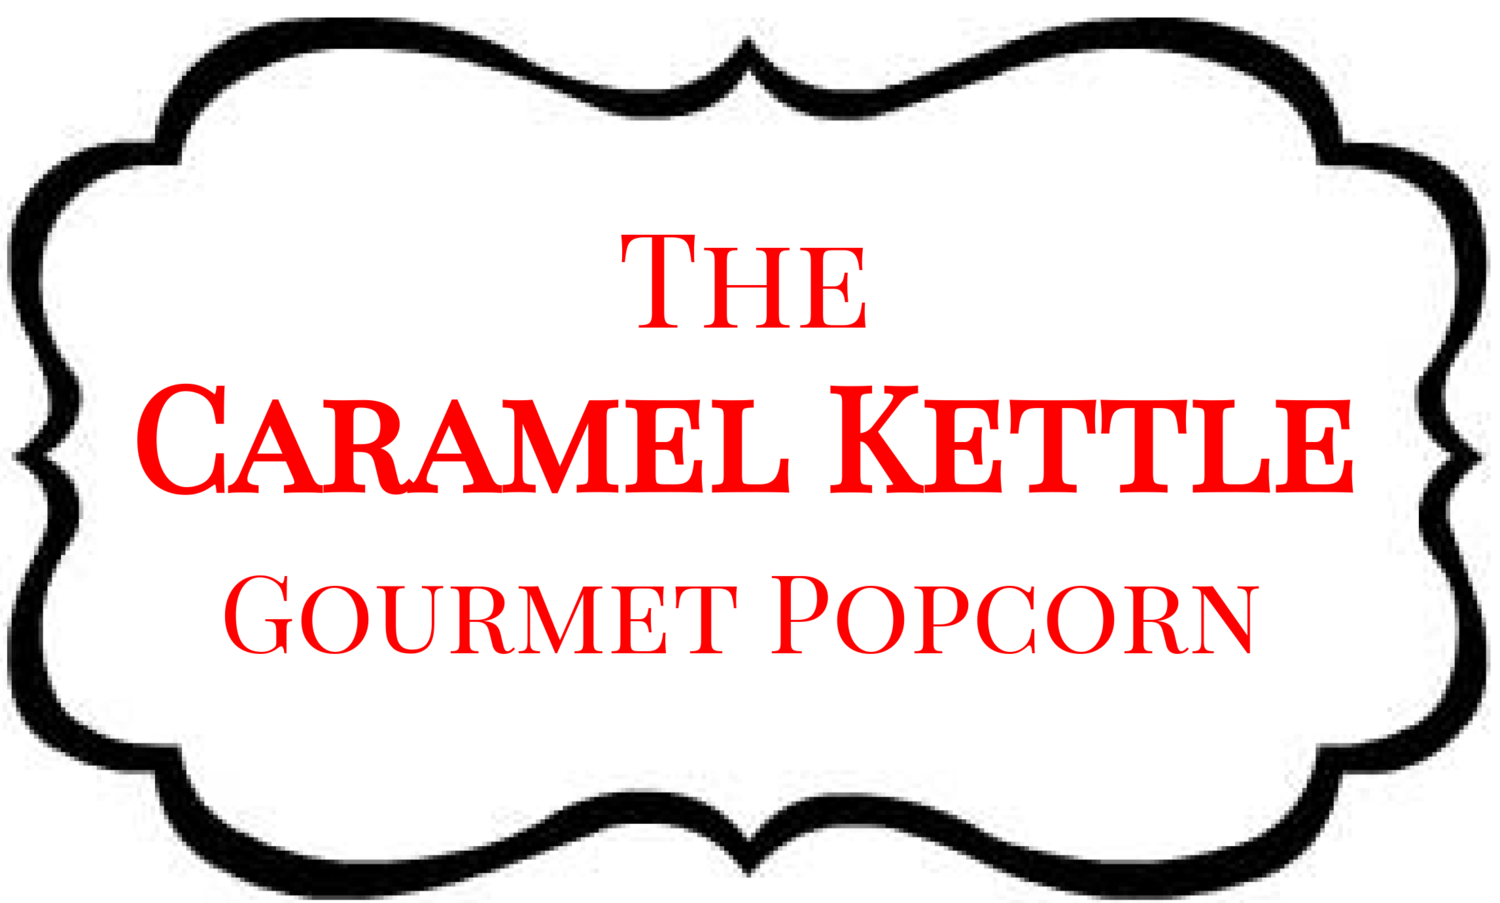 The Caramel Kettle